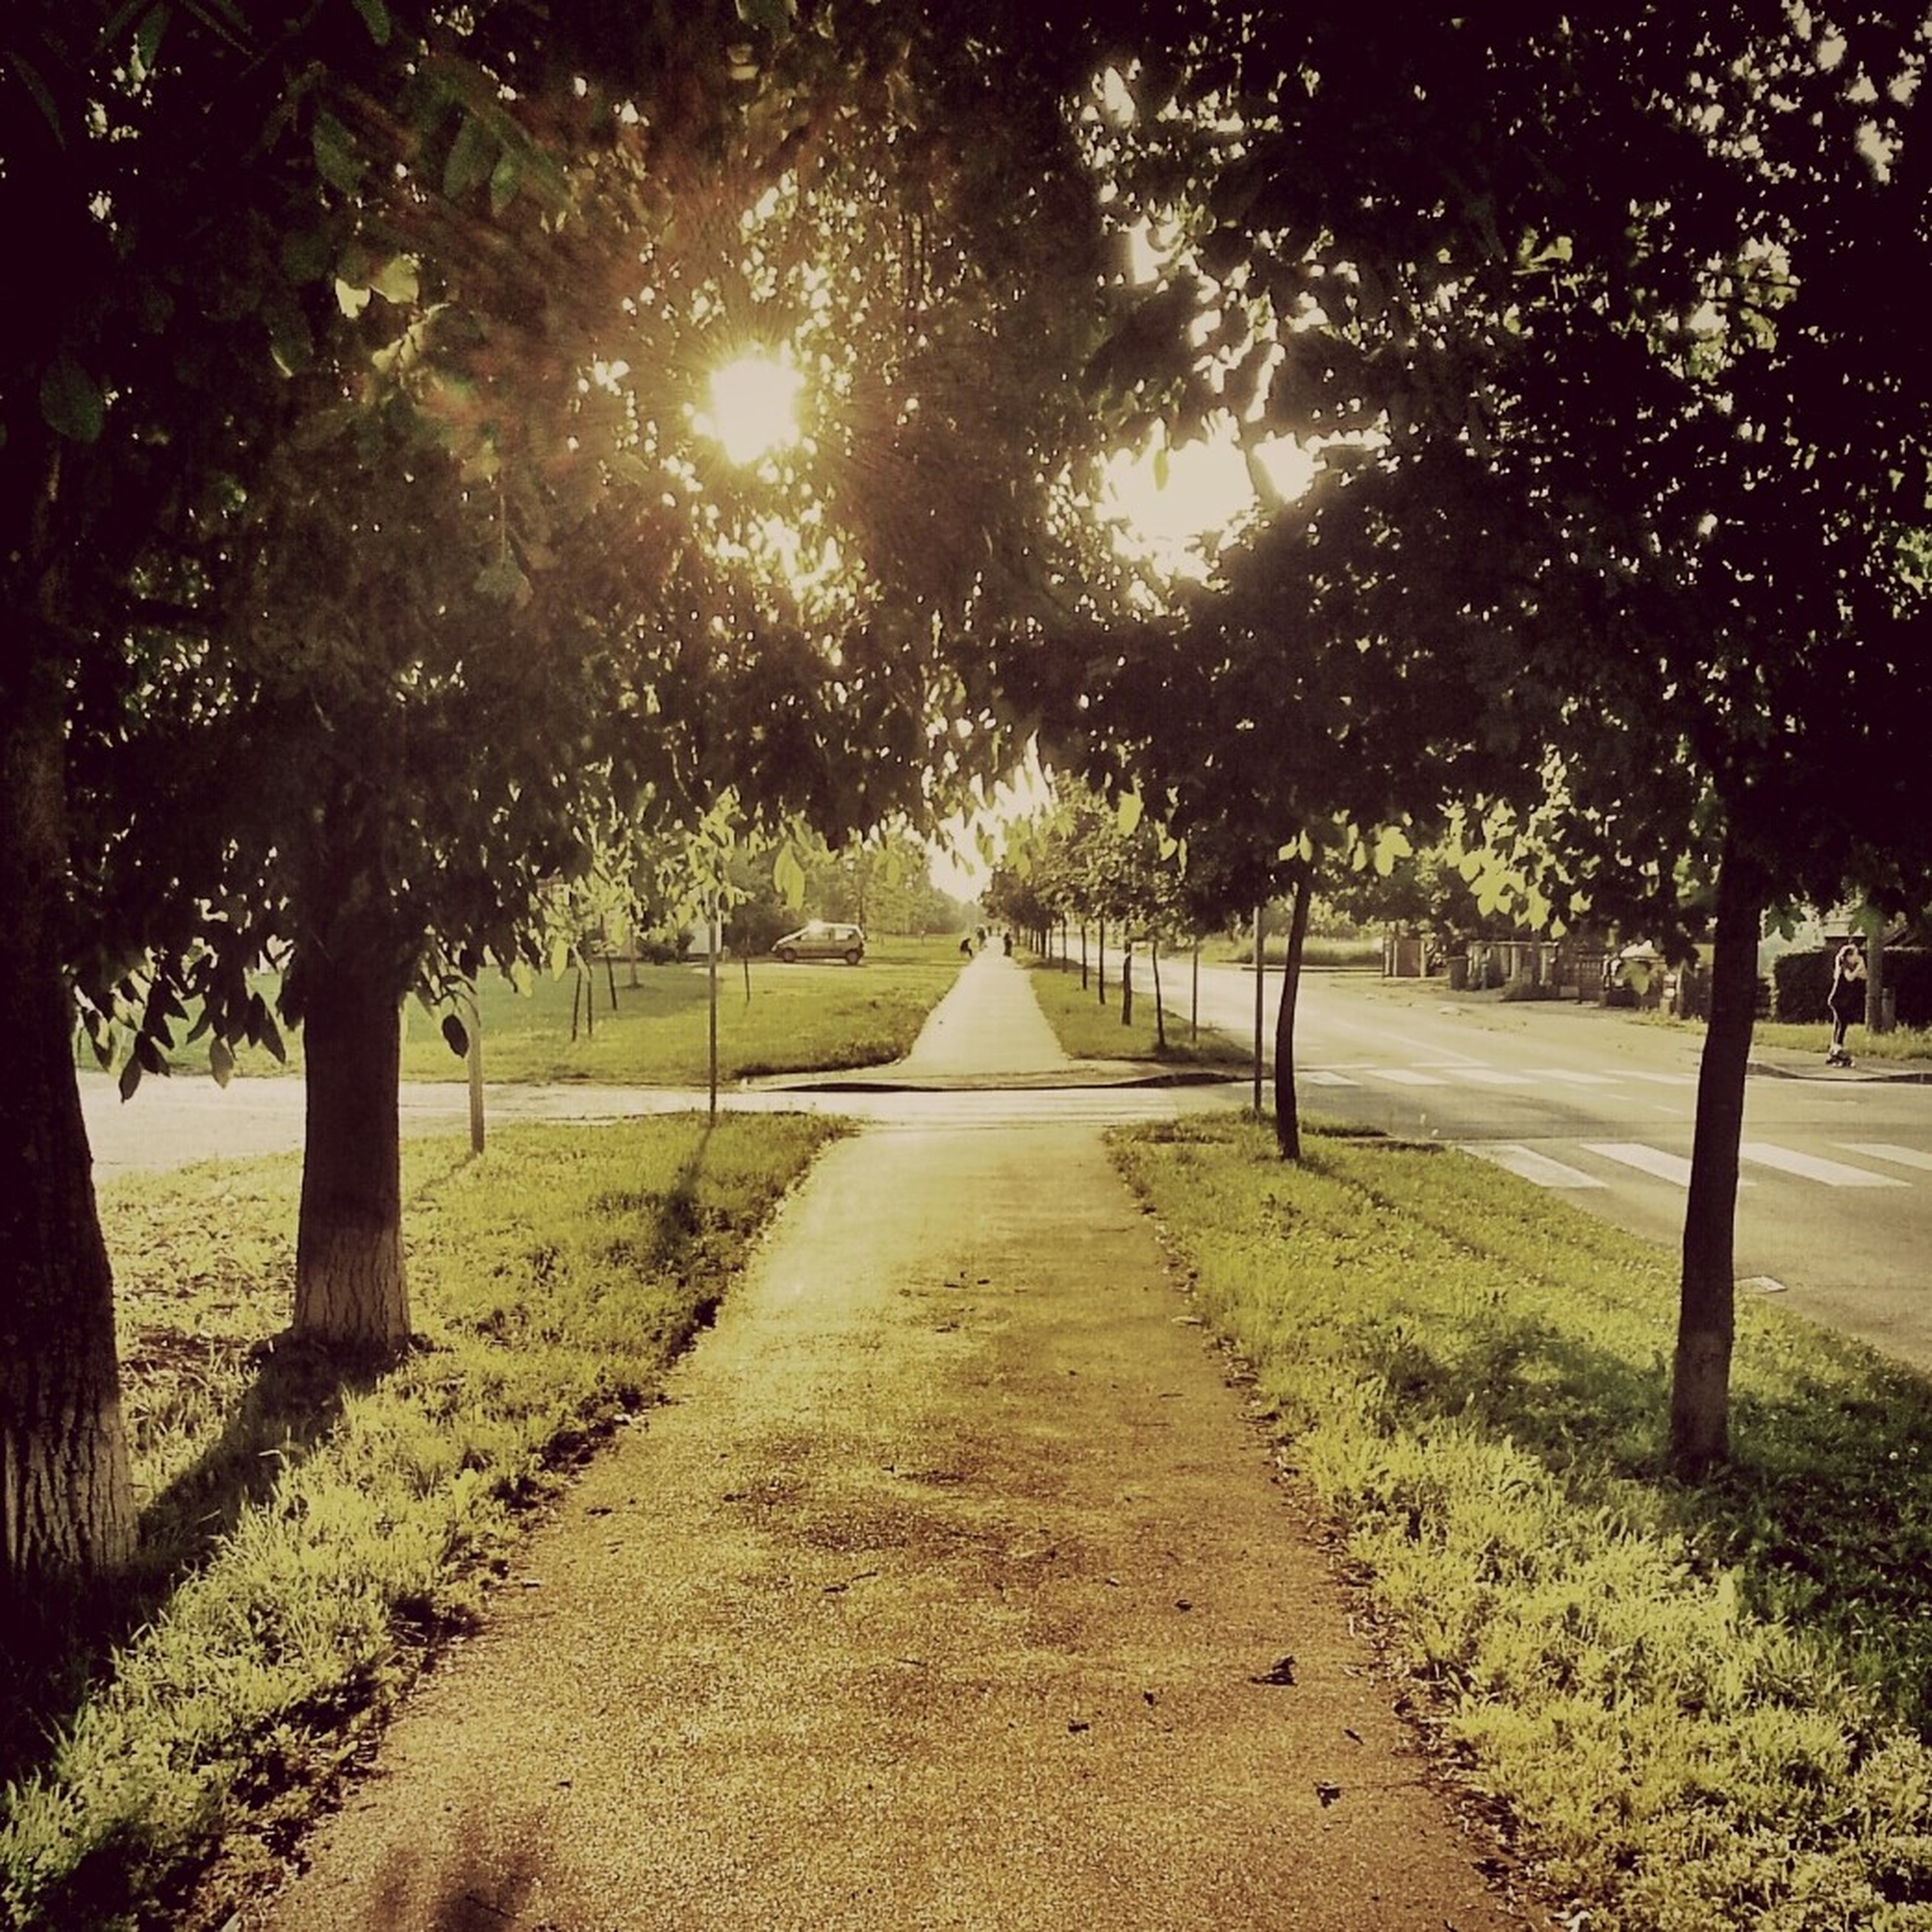 tree, the way forward, tranquility, diminishing perspective, treelined, vanishing point, growth, nature, branch, footpath, tranquil scene, grass, tree trunk, sunlight, beauty in nature, scenics, landscape, park - man made space, field, road